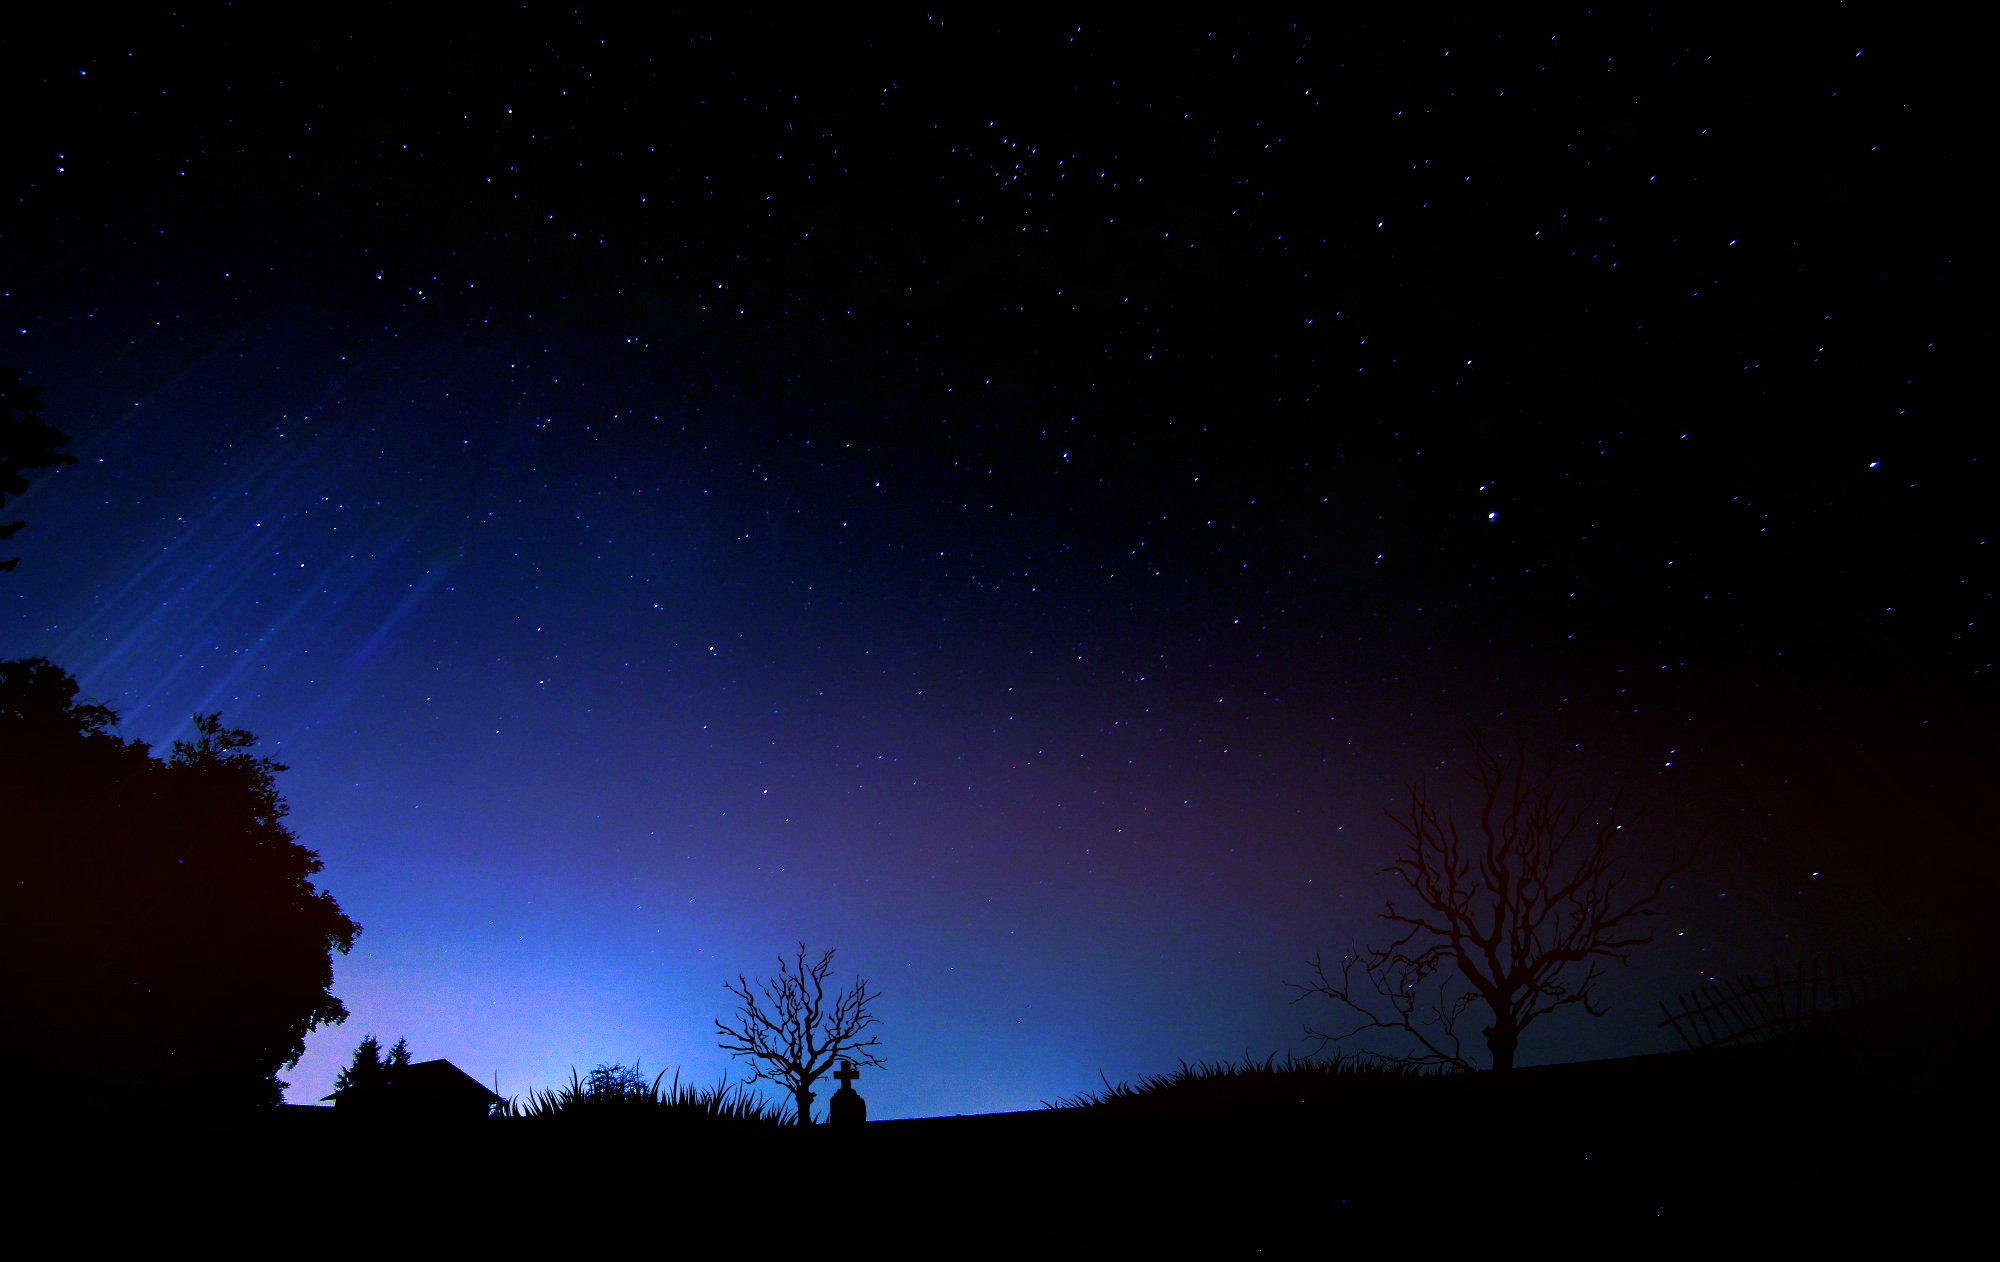 Starry night sky above cemetery free image